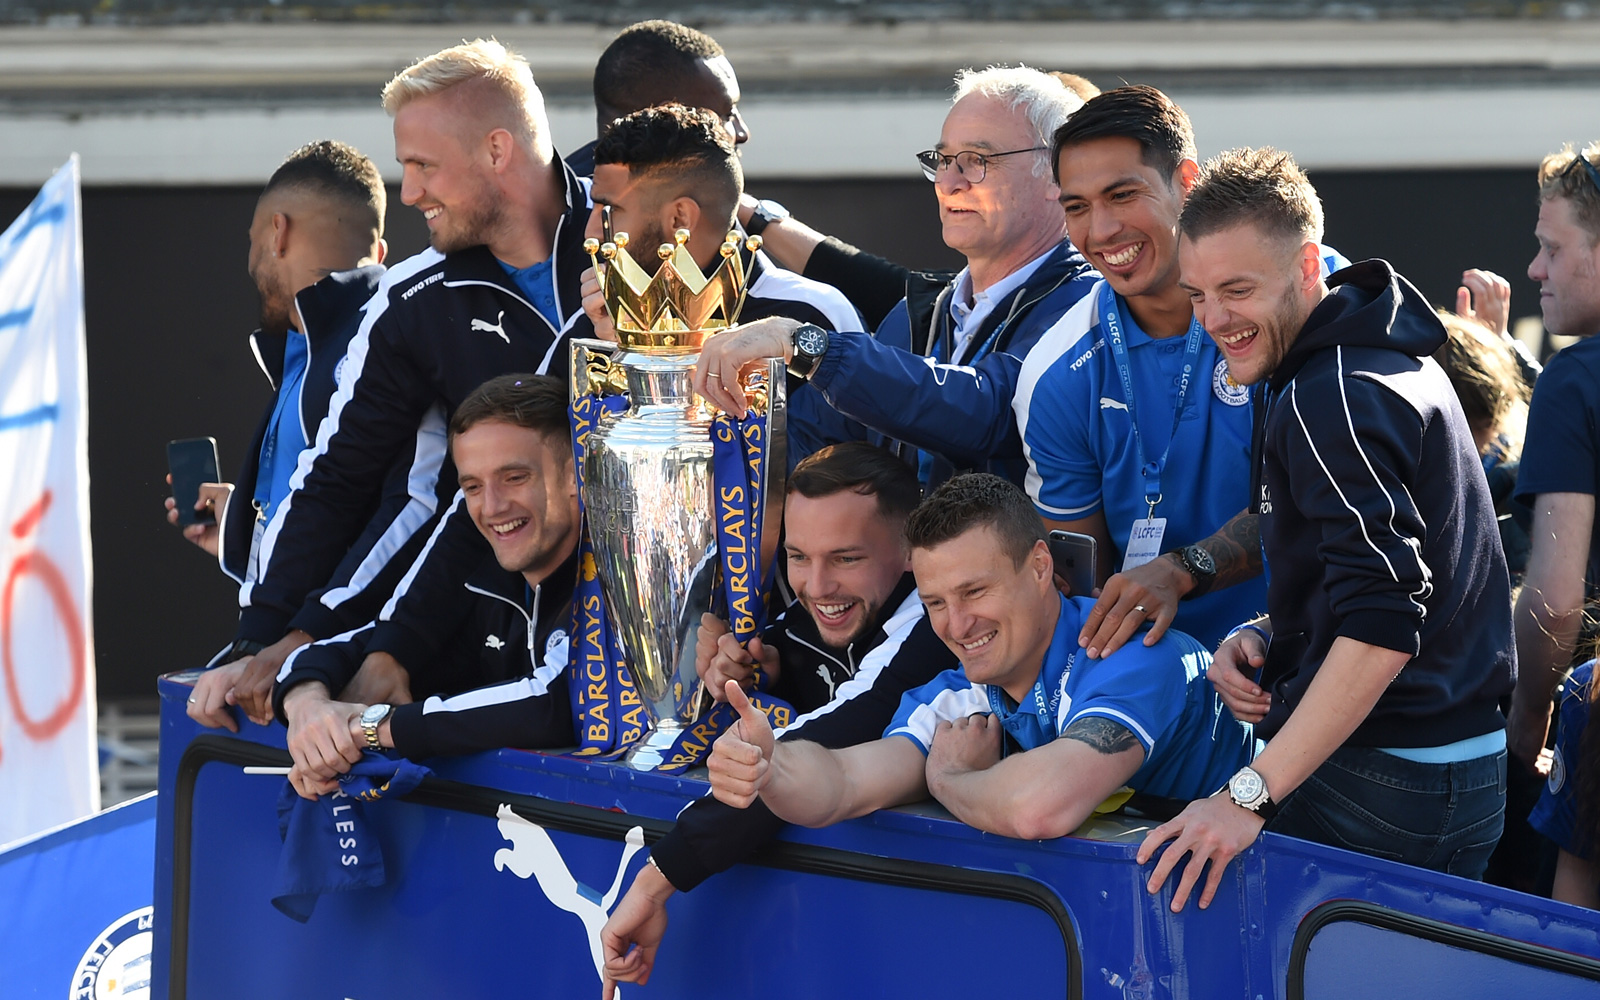 Flanked by his star players, Leicester manager Claudio Ranieri shows off the Premier League trophy.